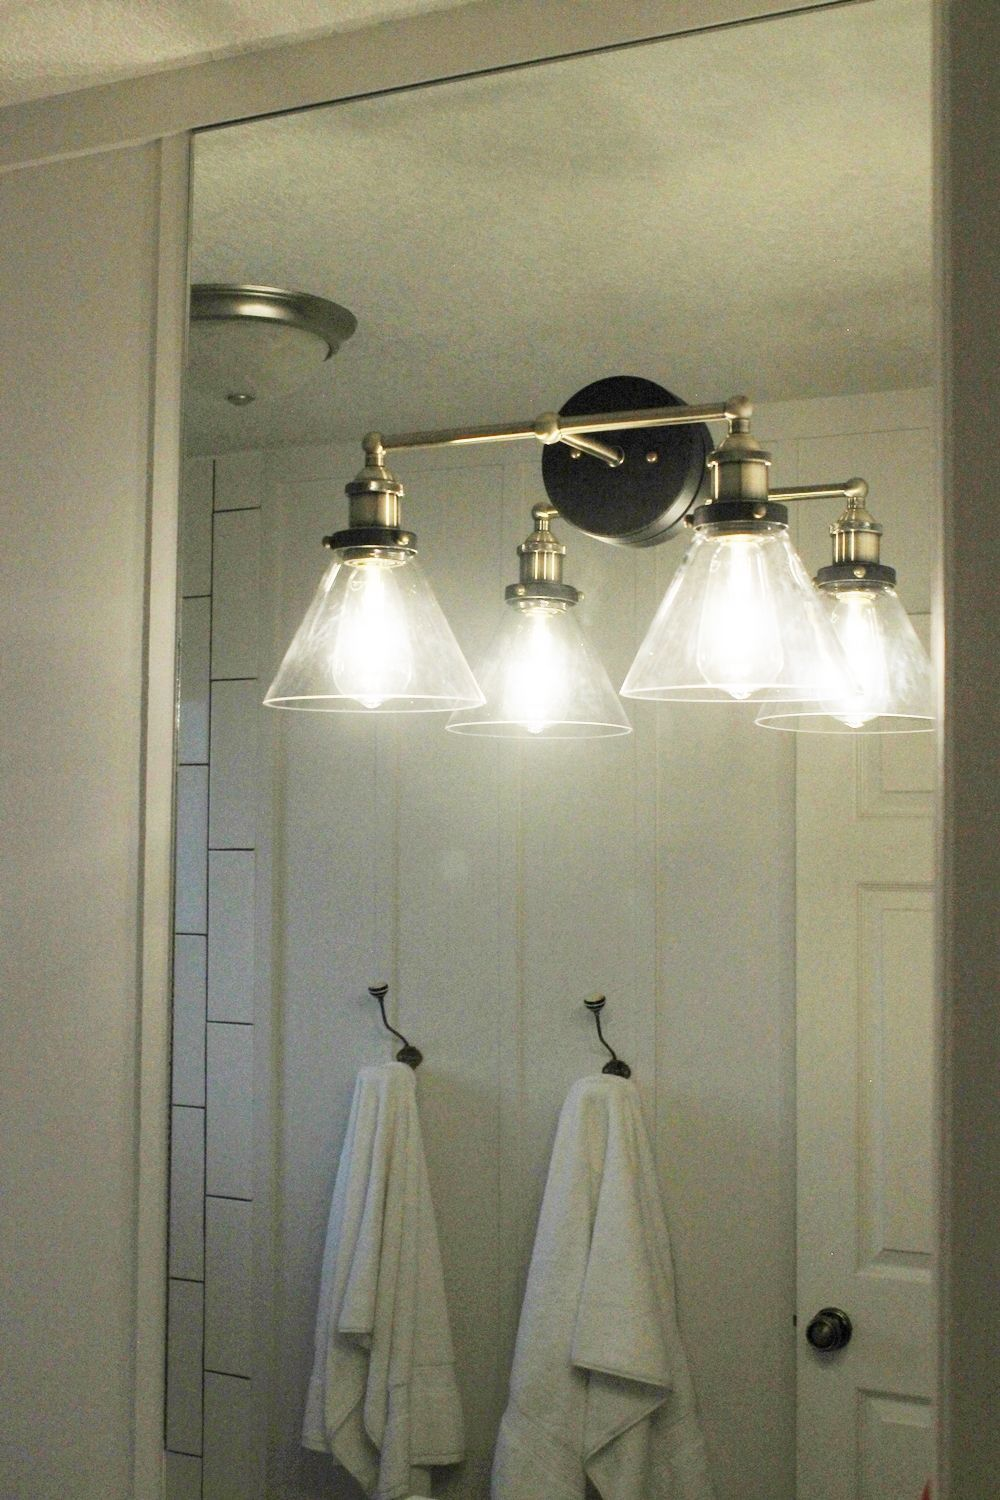 How to mount a light on top of a mirror bathroom vanity add lighting fixture on mirror aloadofball